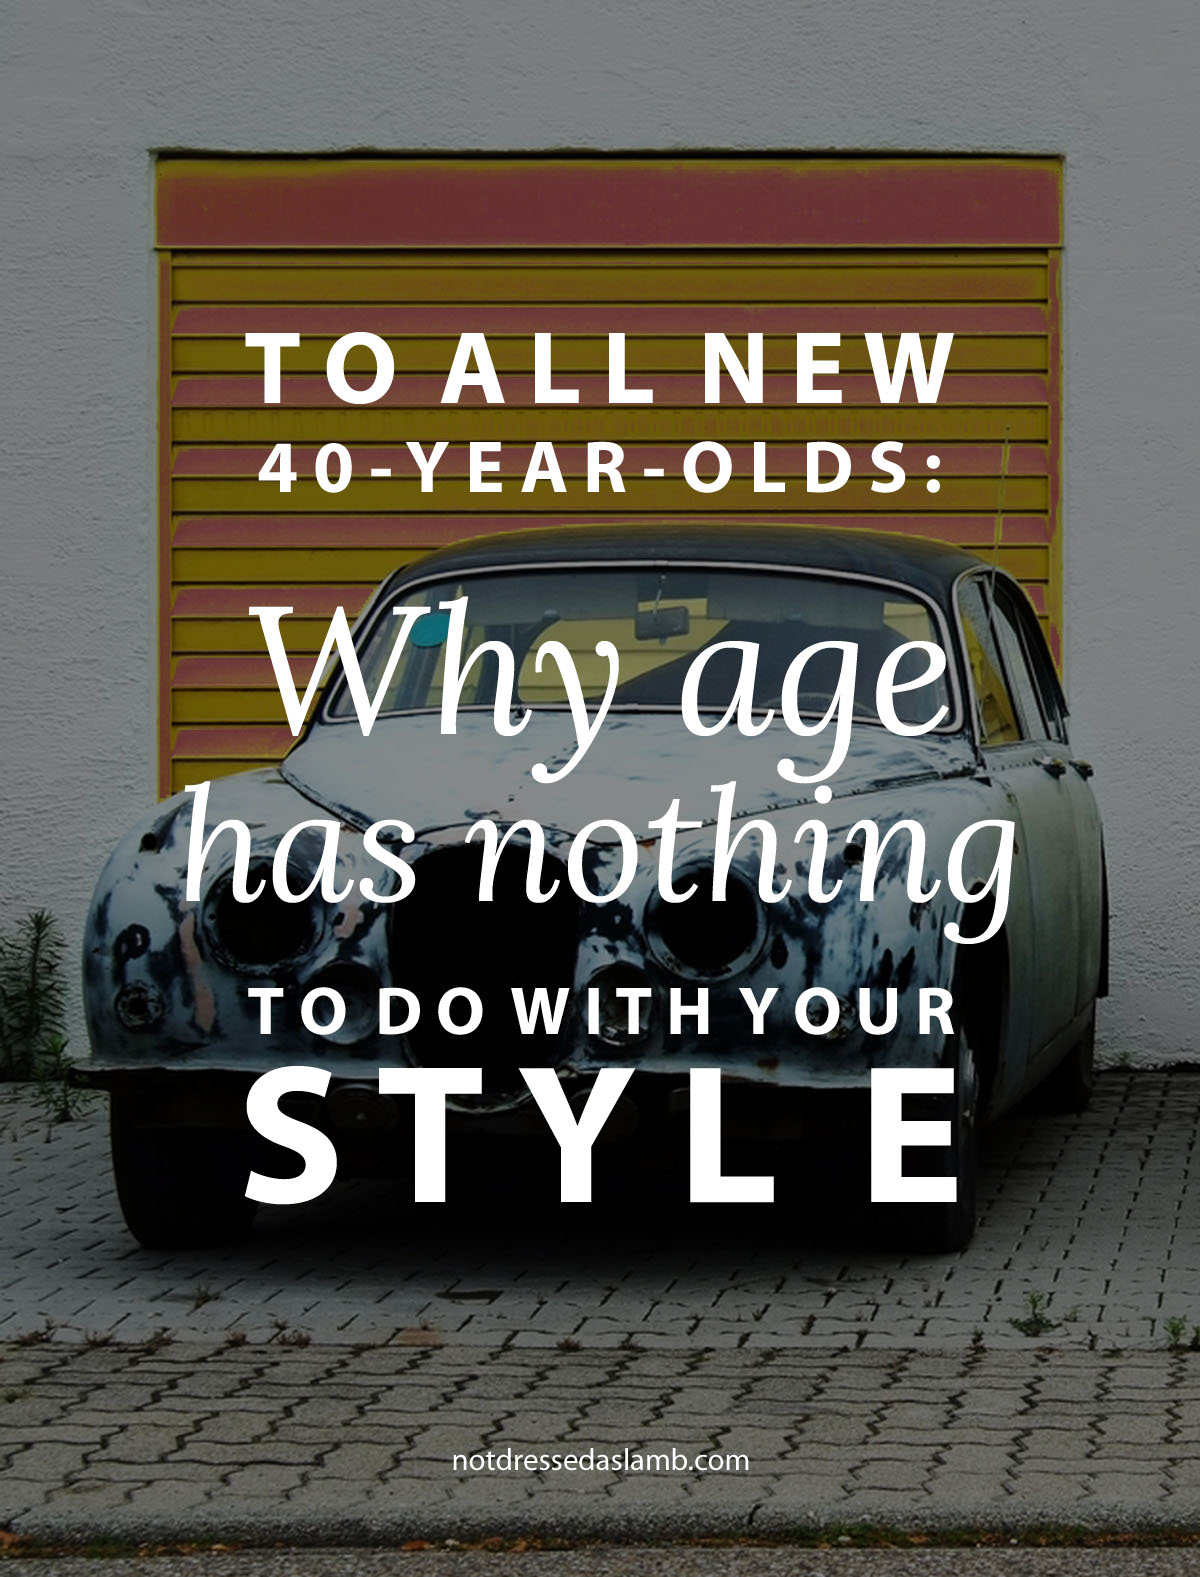 To All New 40-Year-Olds: Why Age Has Nothing to Do With Your Style